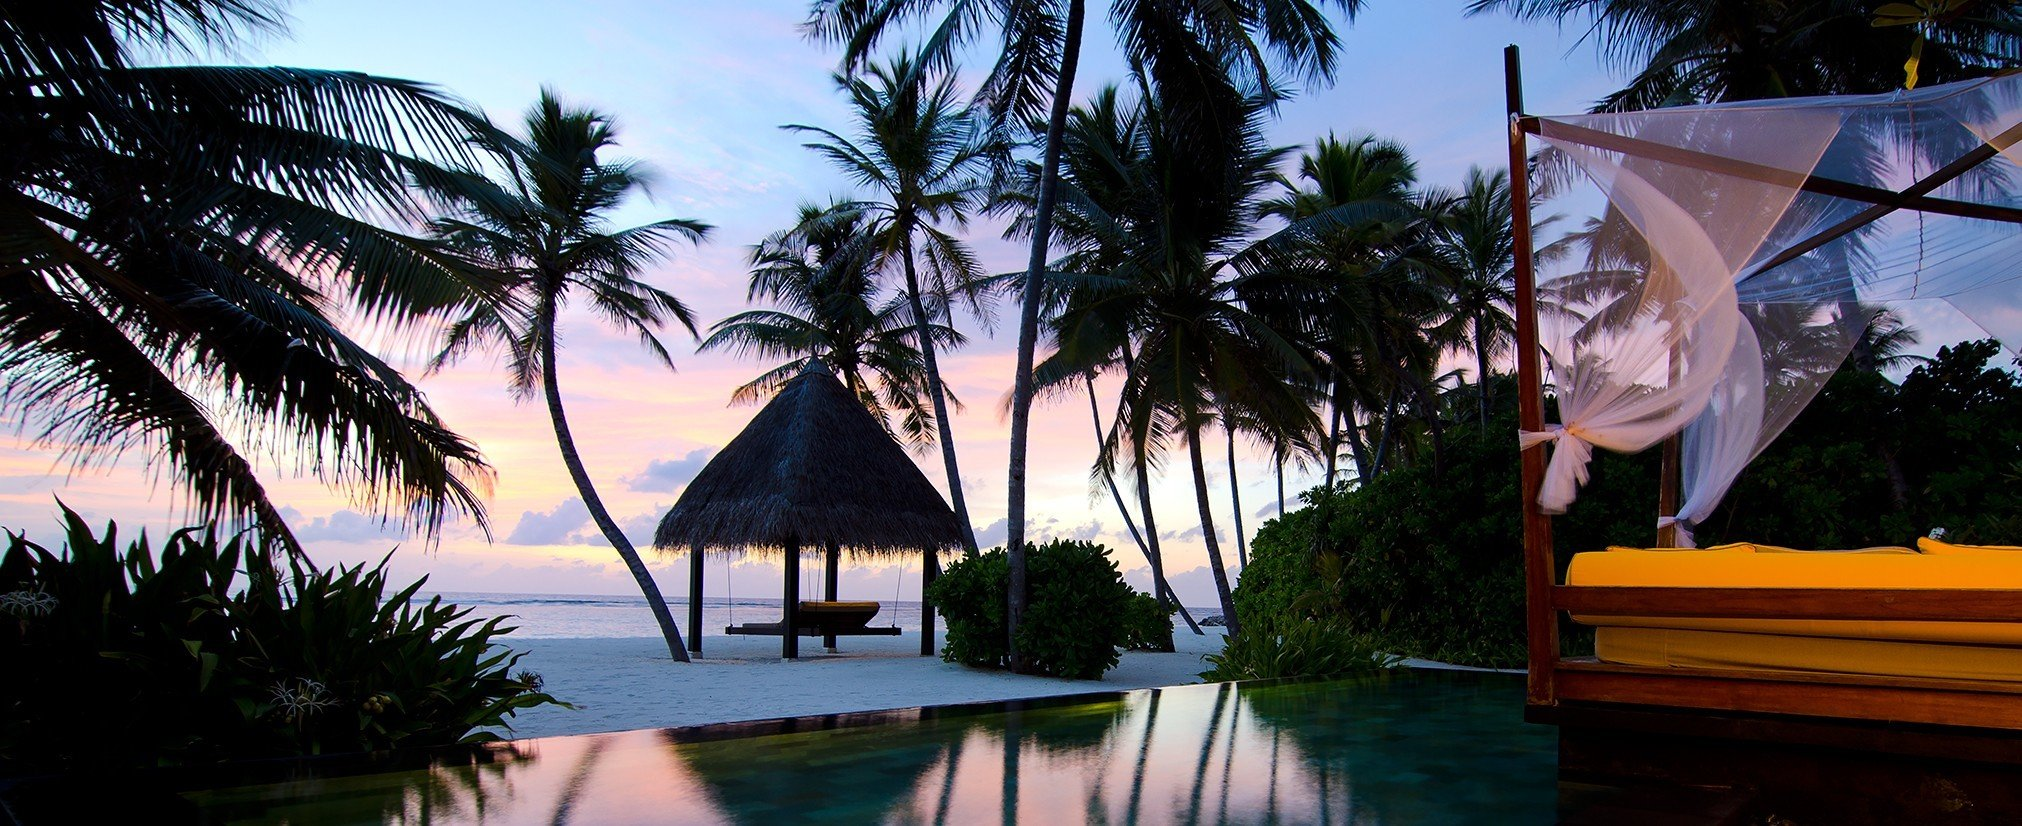 Trip Ideas tree outdoor palm Resort vacation arecales tourism swimming pool plant shade furniture